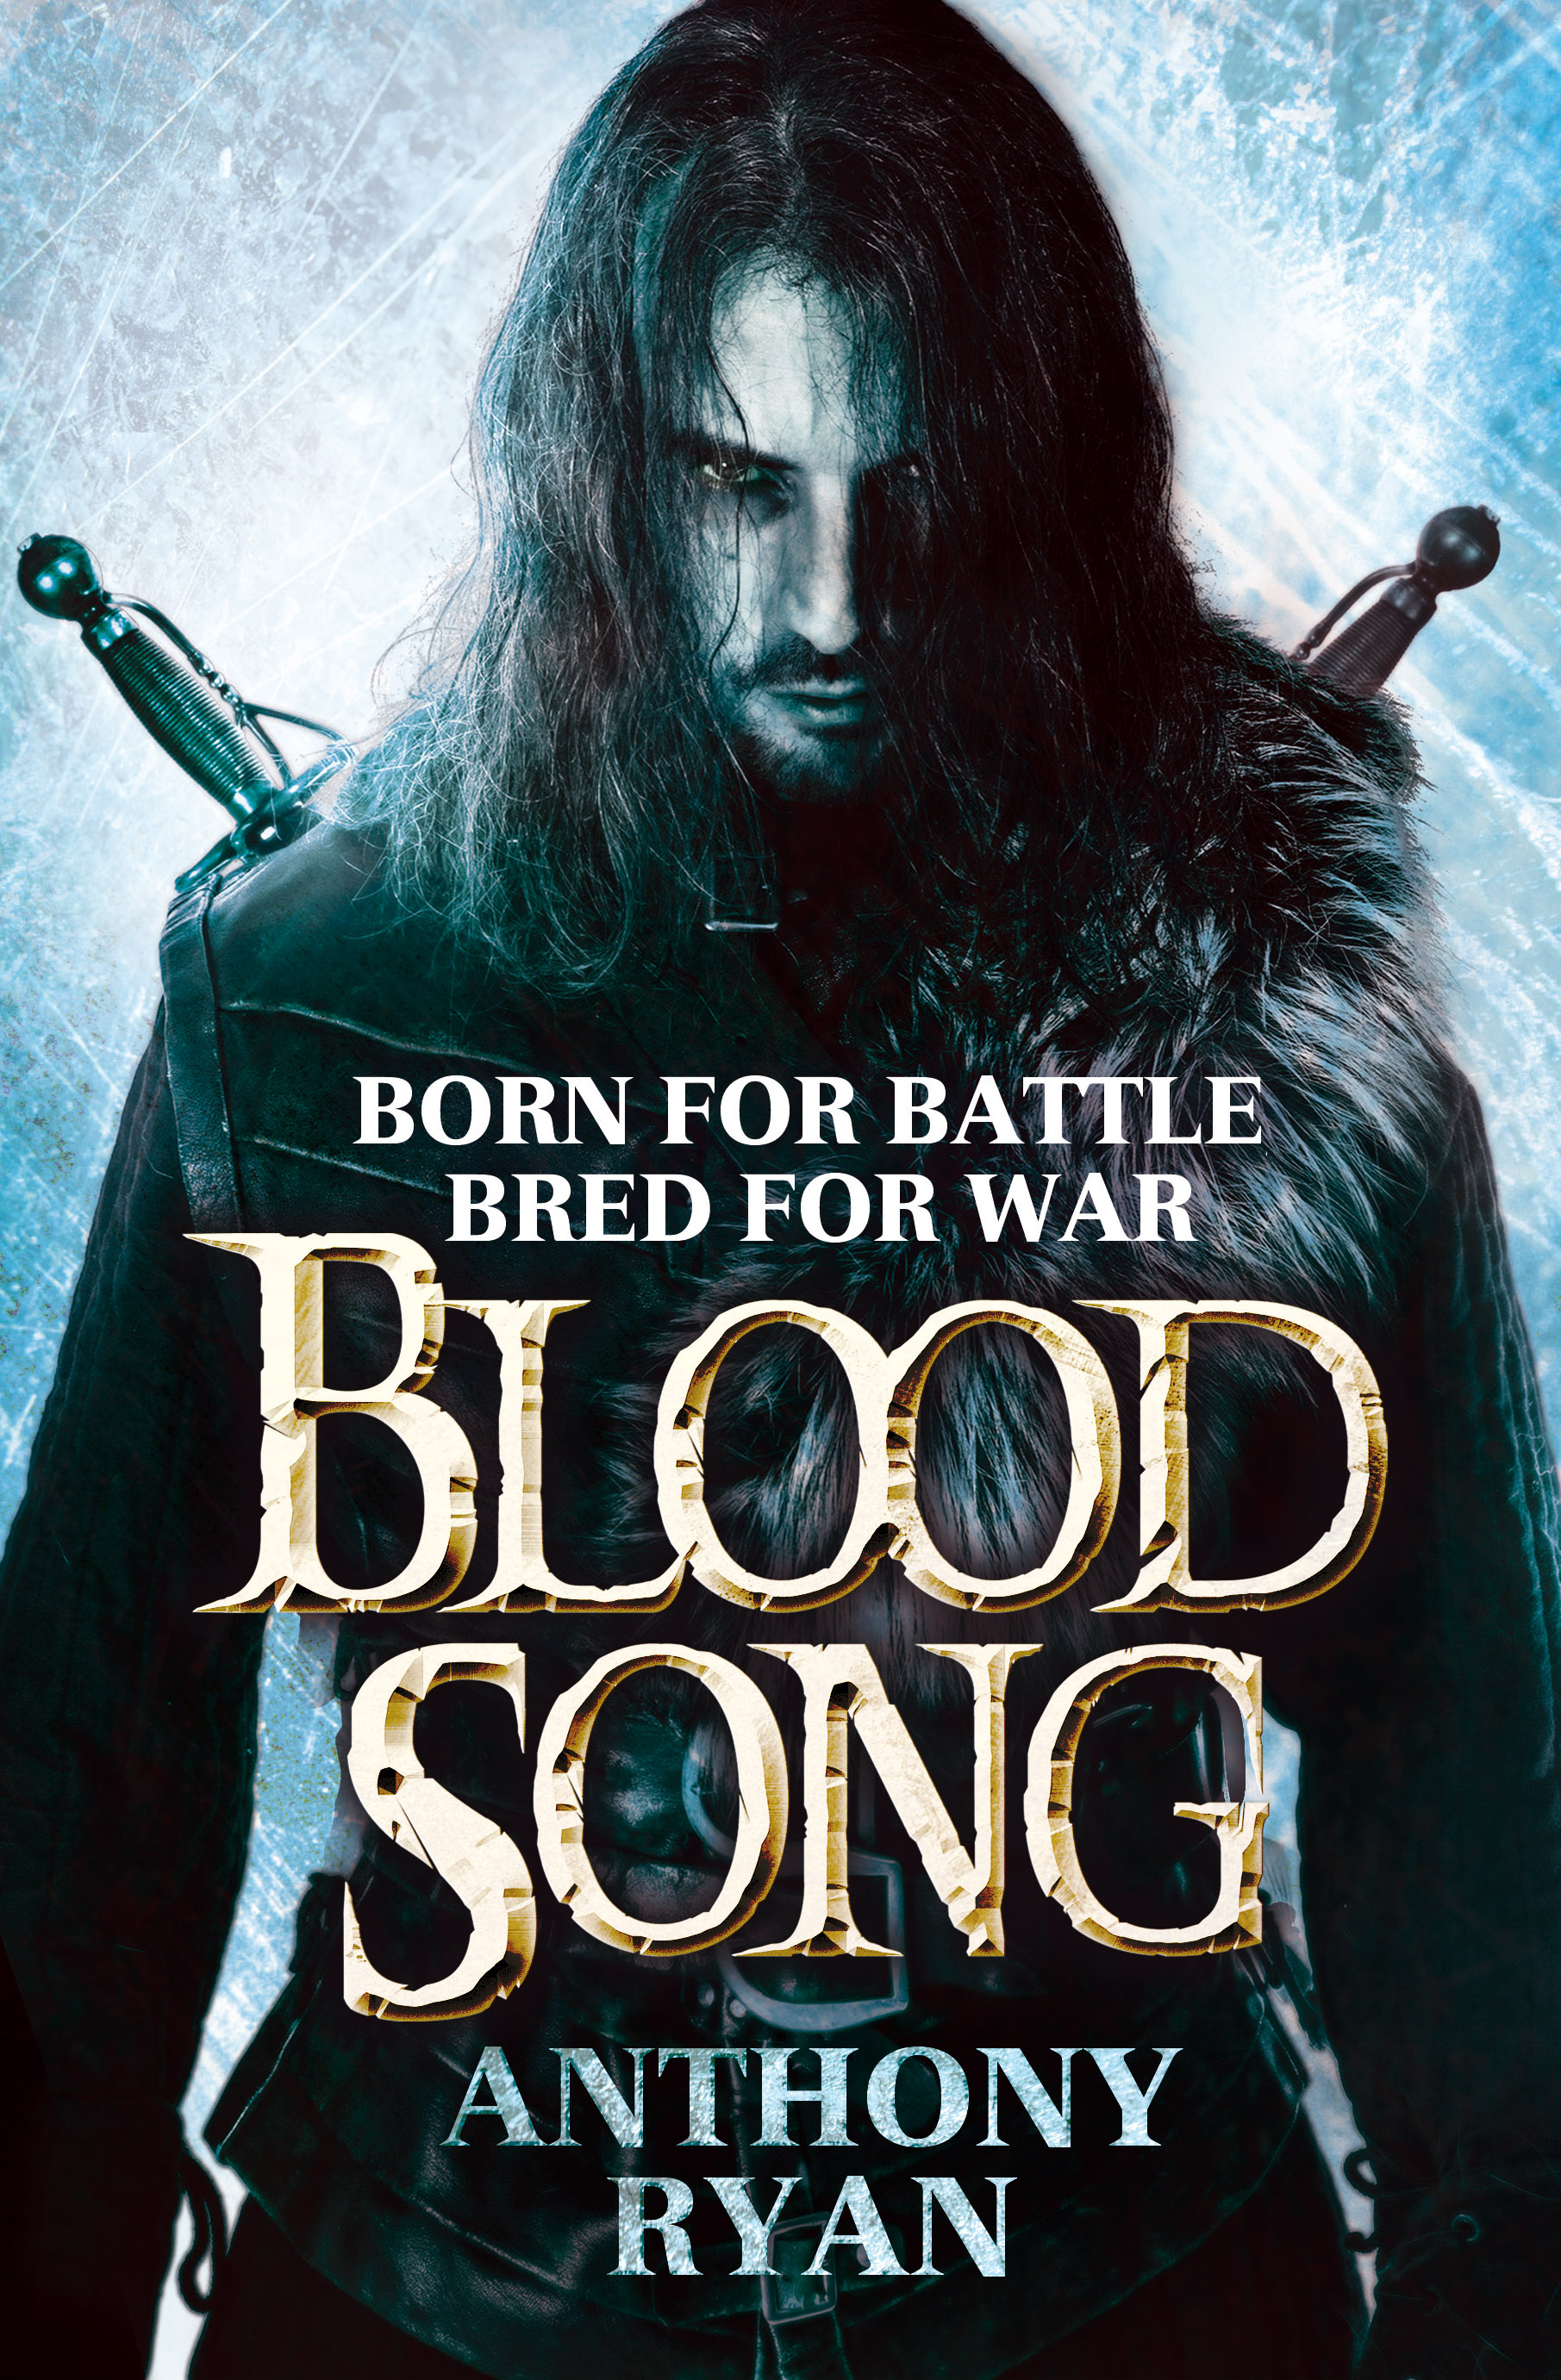 http://www.orbitbooks.net/wp-content/uploads/2013/03/BLOOD-SONG-FINAL.jpg